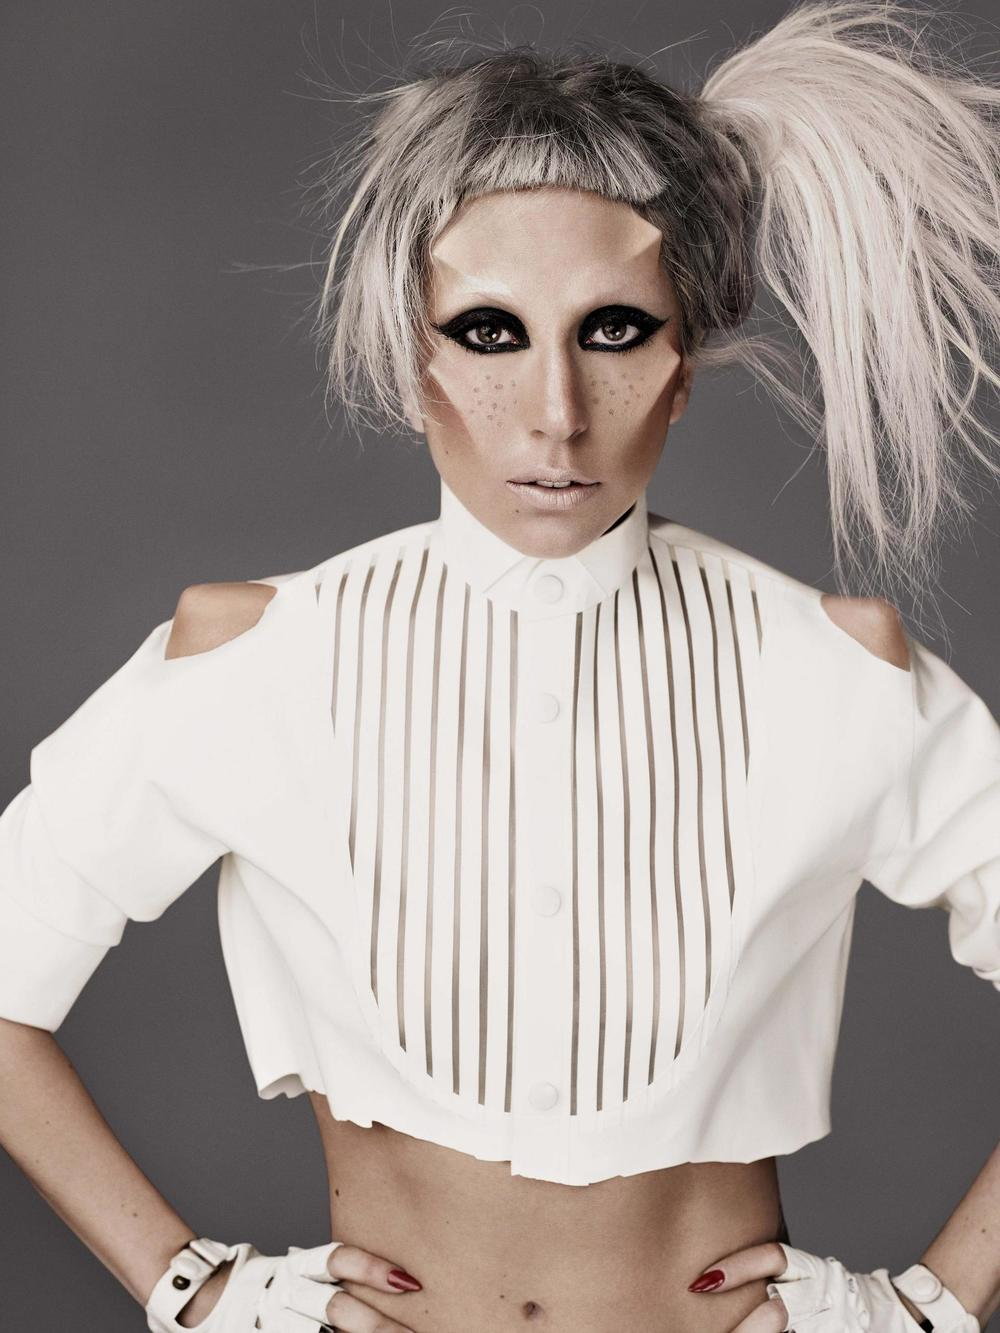 Lady-Gaga-Mariano-Vivanco-Photoshoot-Super-HQ-lady-gaga-25788331-1920-2560.jpg